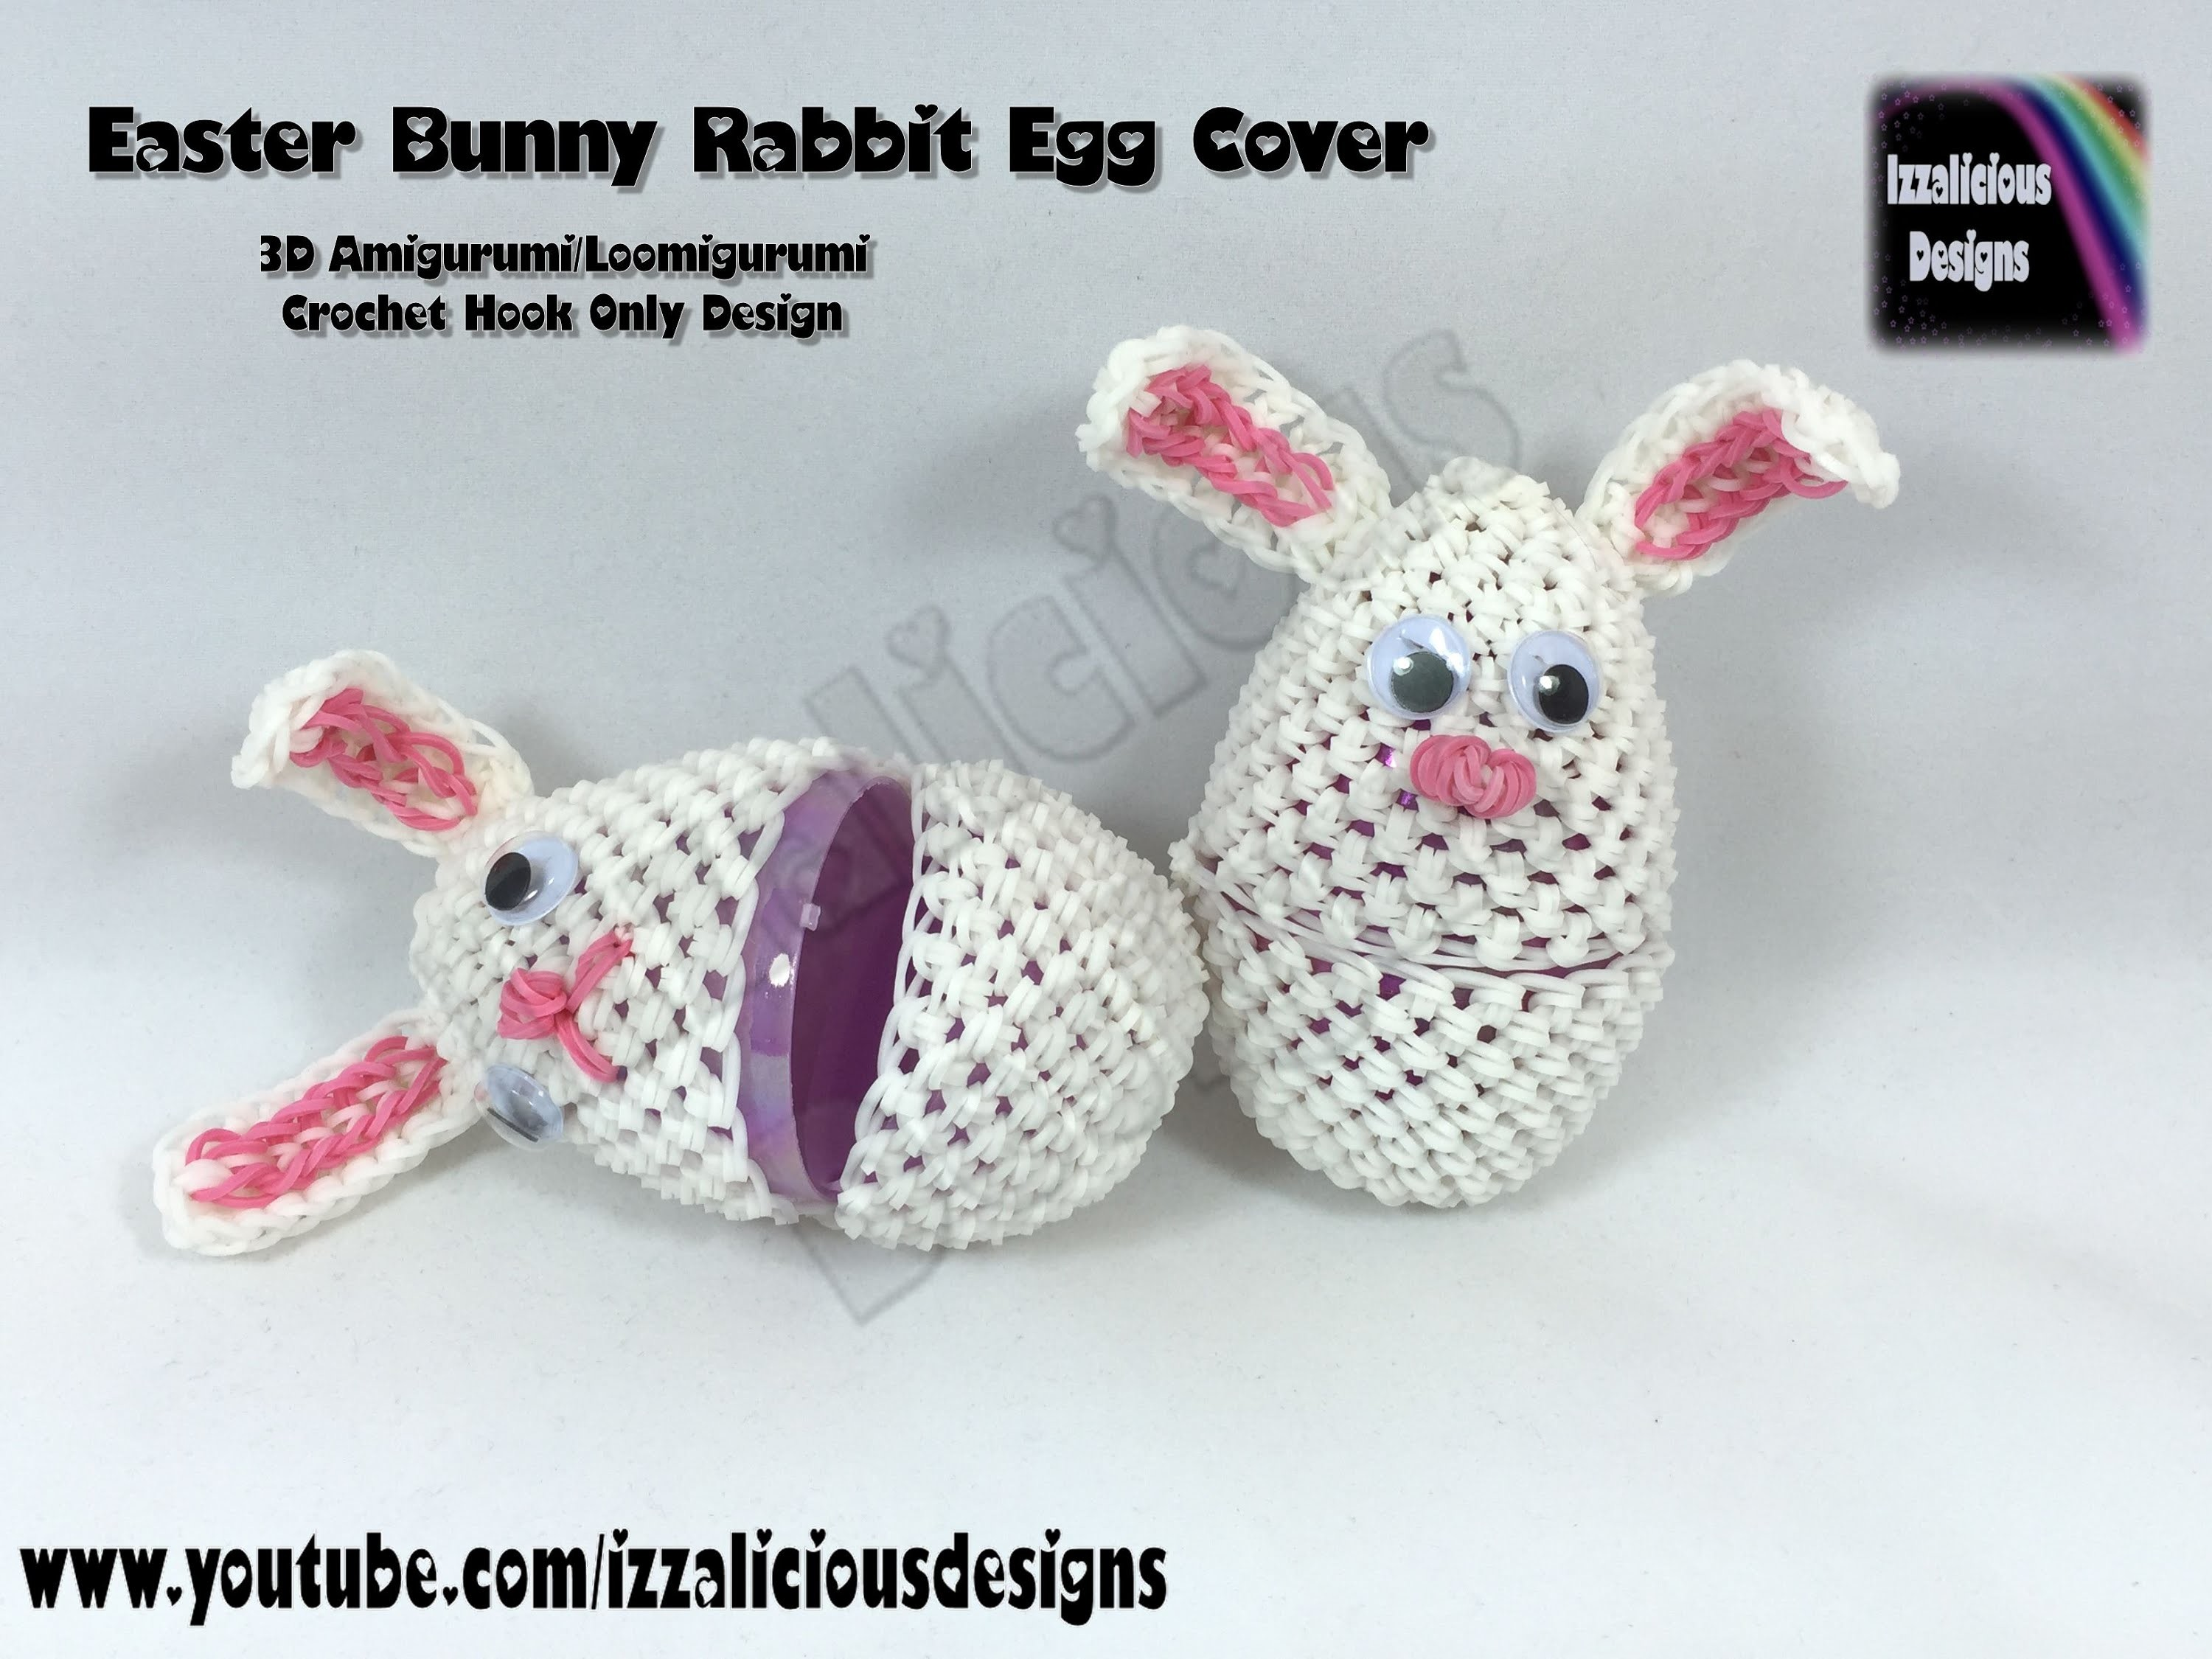 Rainbow Loom 3D Amigurumi.Loomigurumi Easter Bunny Rabbit Egg Cover - Loomless